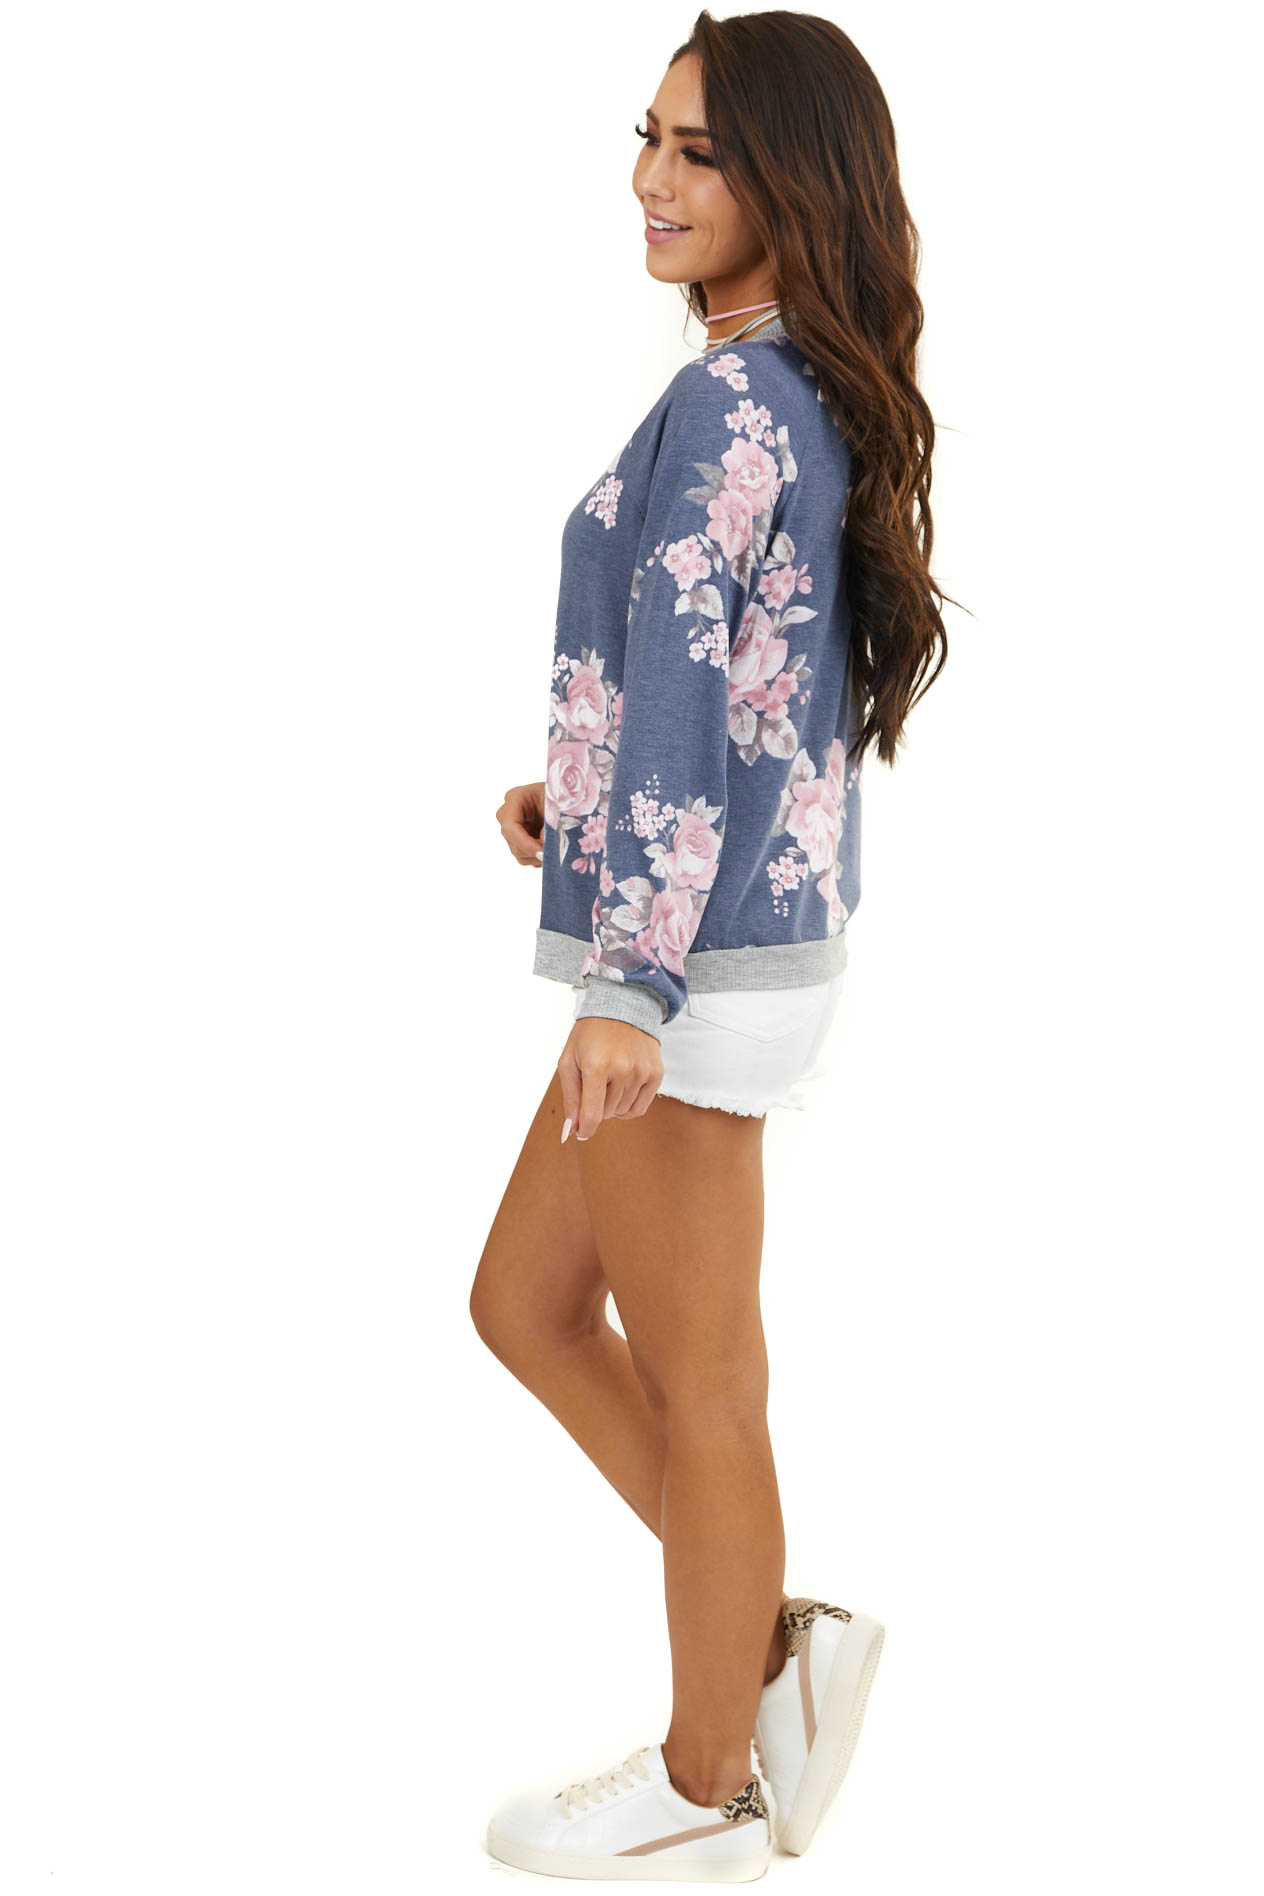 Faded Navy Floral Knit Bomber Jacket with Pockets